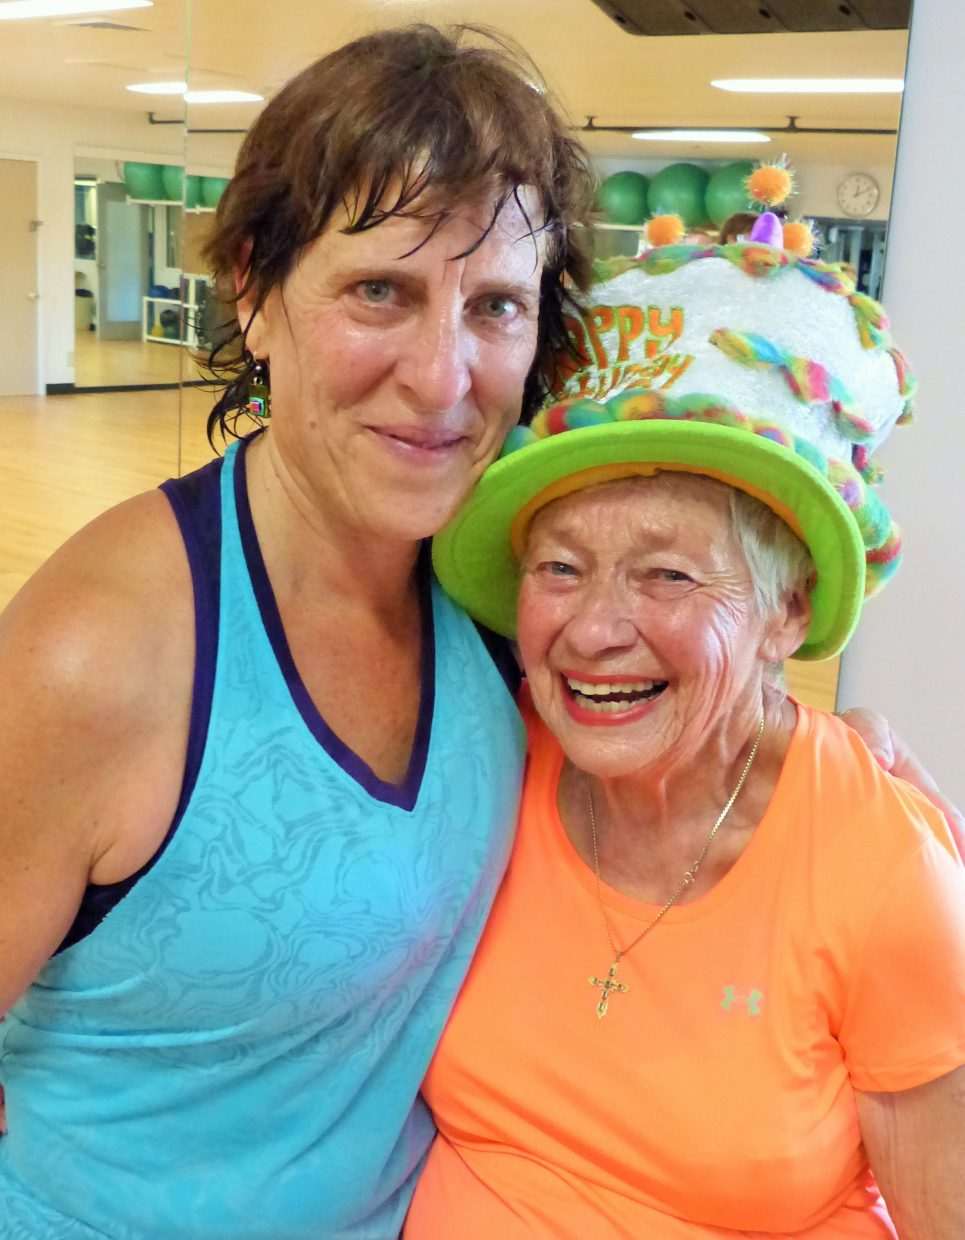 Giselle Miller celebrated her 81st birthday Saturday, with a very fun Zumba Fitness dancing class. Giselle is a regular! She is shown here with Zumba instructor Jodi Glaisher. Submitted by Shannon Lukens.